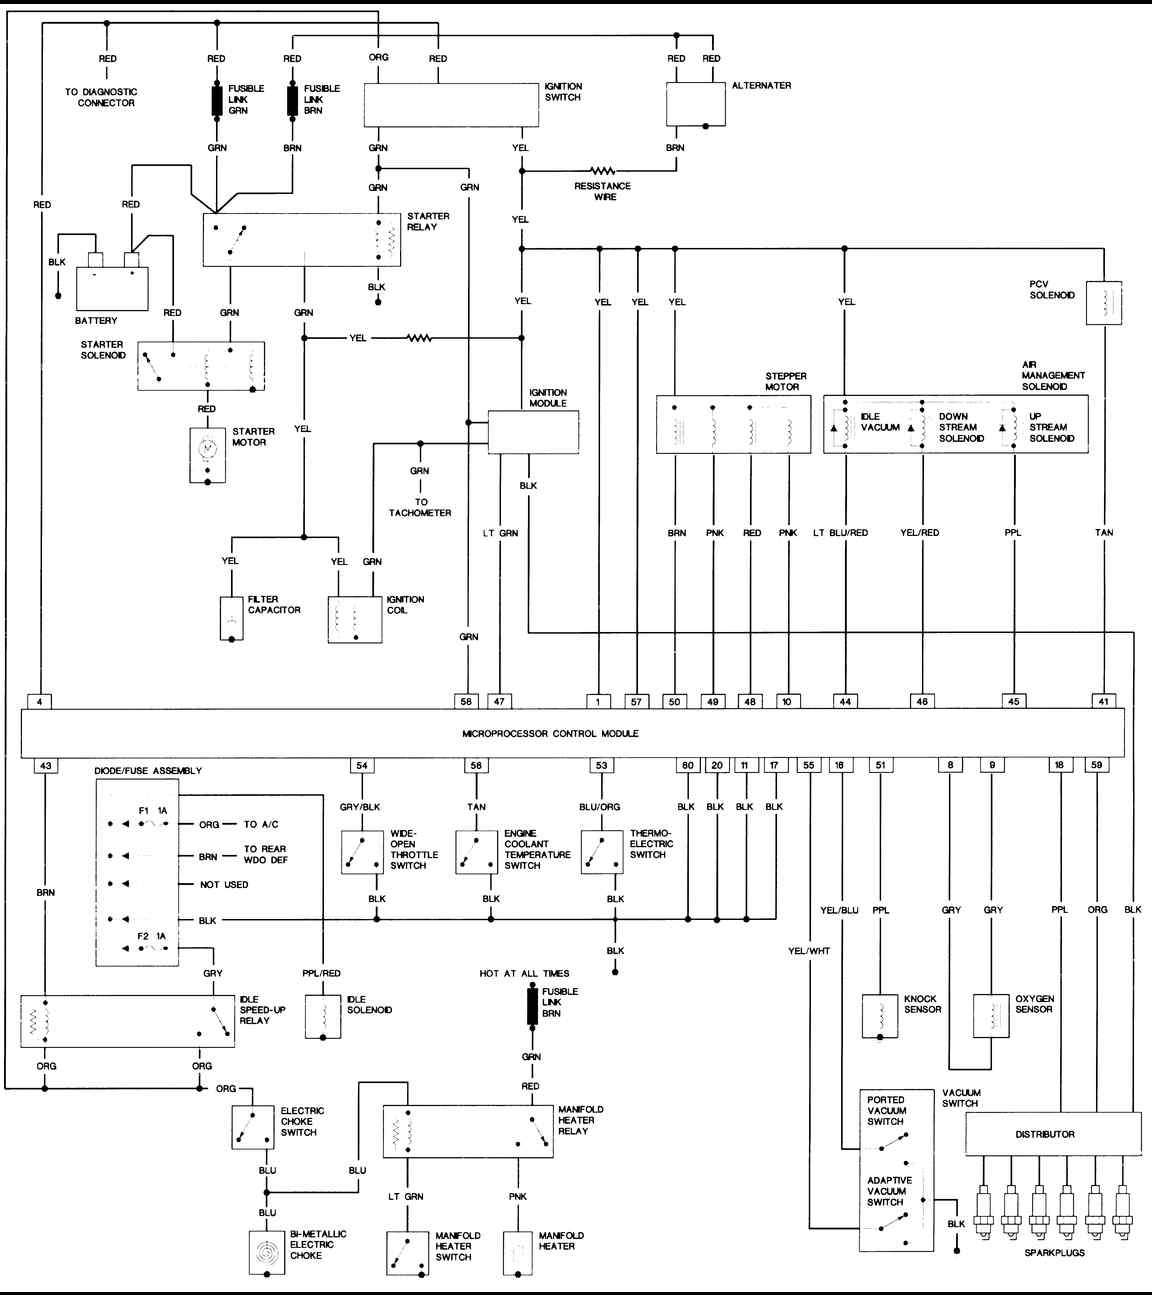 jeep yj wiring diagram dashboard 1987 wrangler wiring diagram 1987 wiring diagrams online description m38 wiring schematic m38 trailer wiring diagram